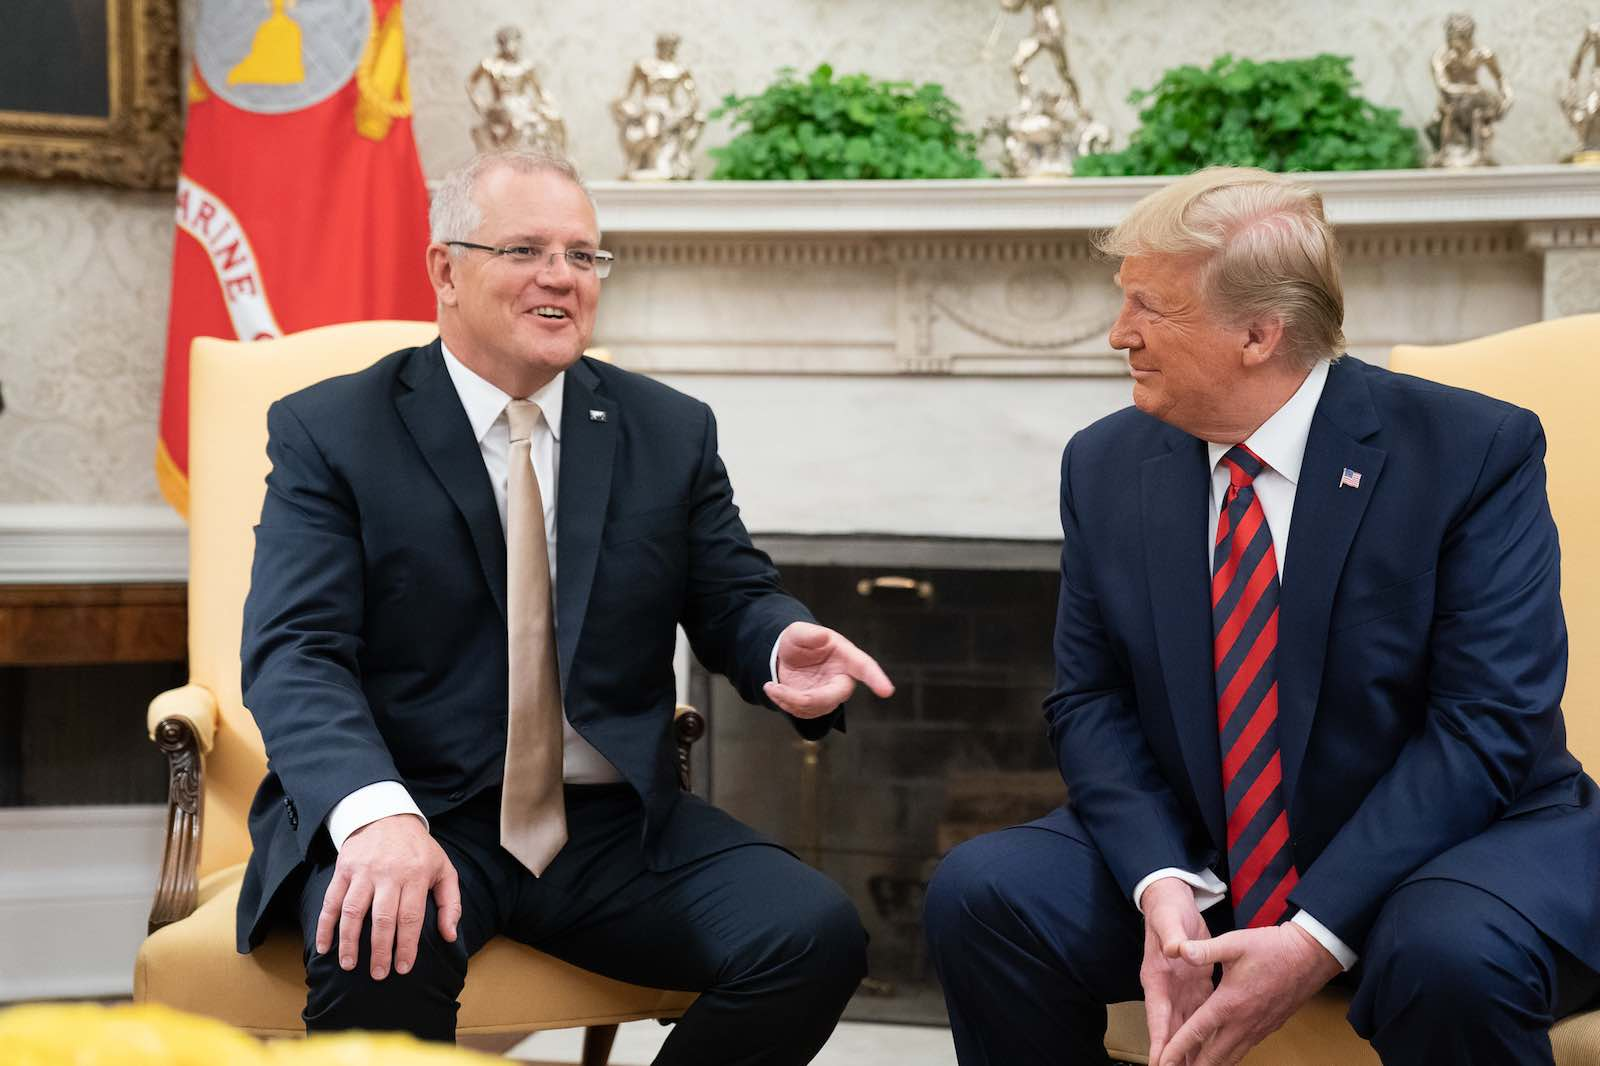 Prime Minister Scott Morrison (L) meeting with US President Donald Trump at the White House in September this year (Photo: White House/Flickr)